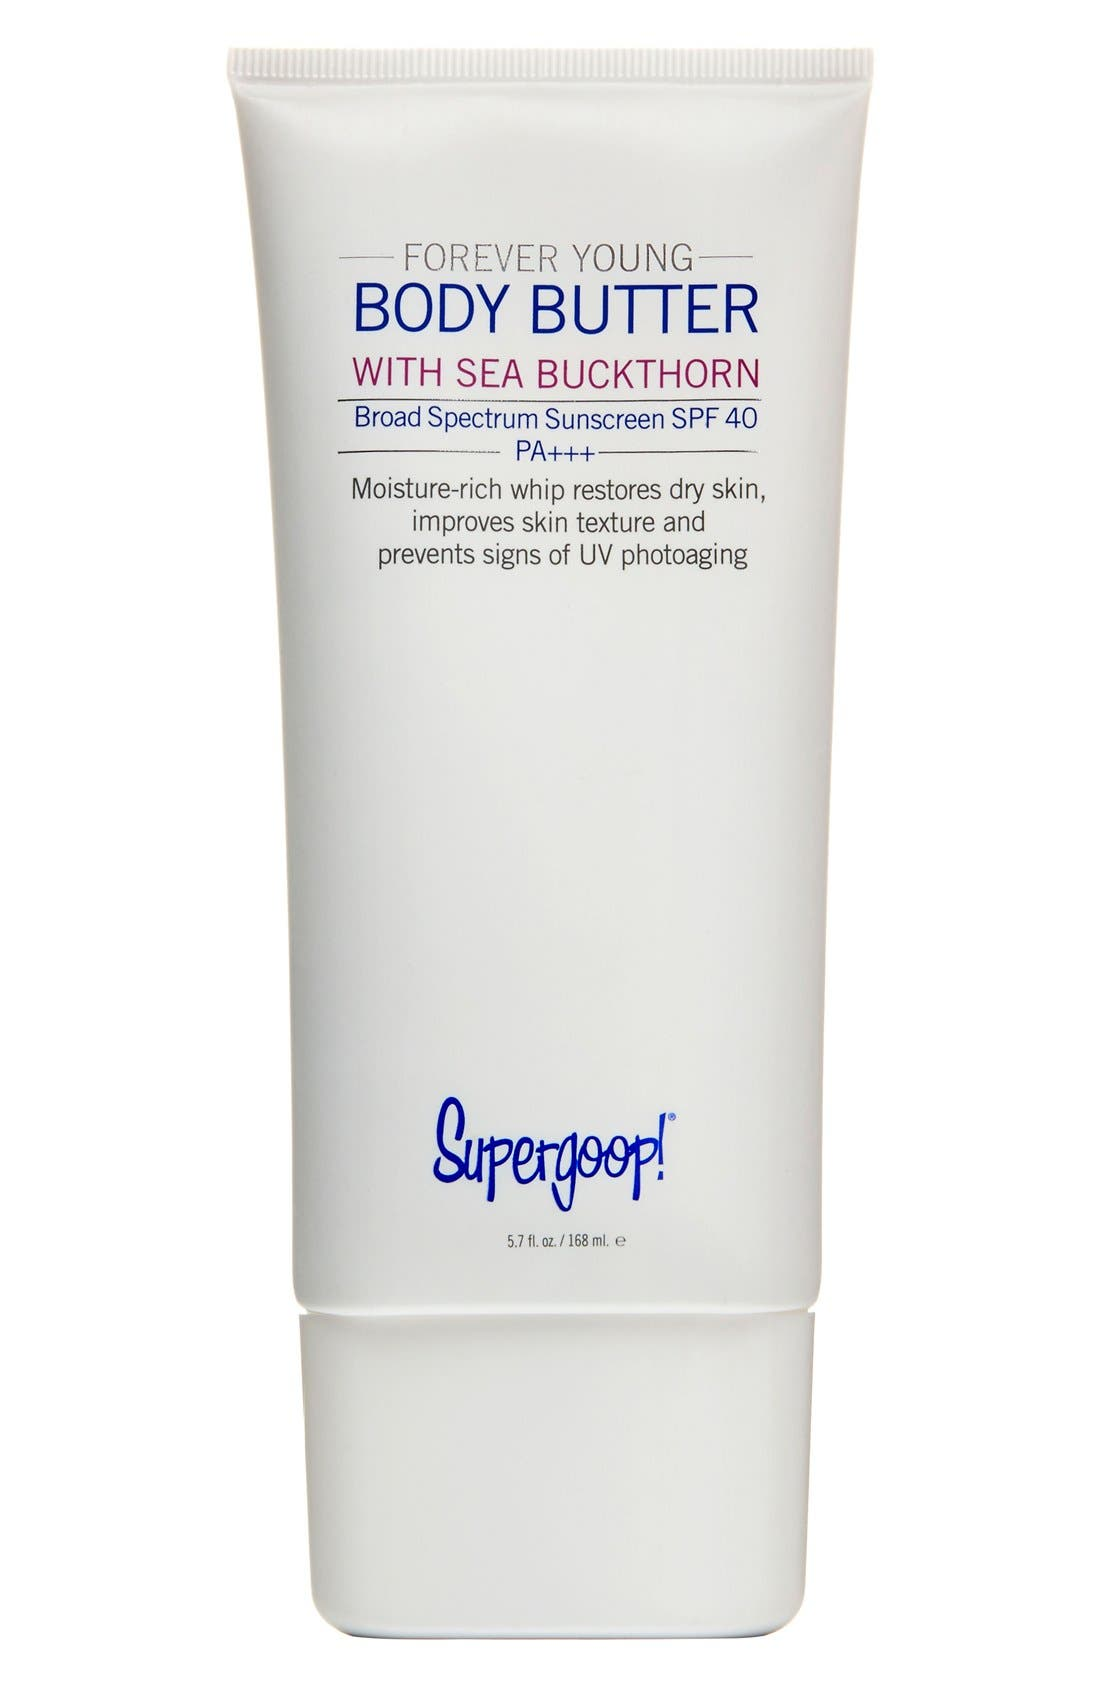 Supergoop! 'Forever Young' Body Butter SPF 40